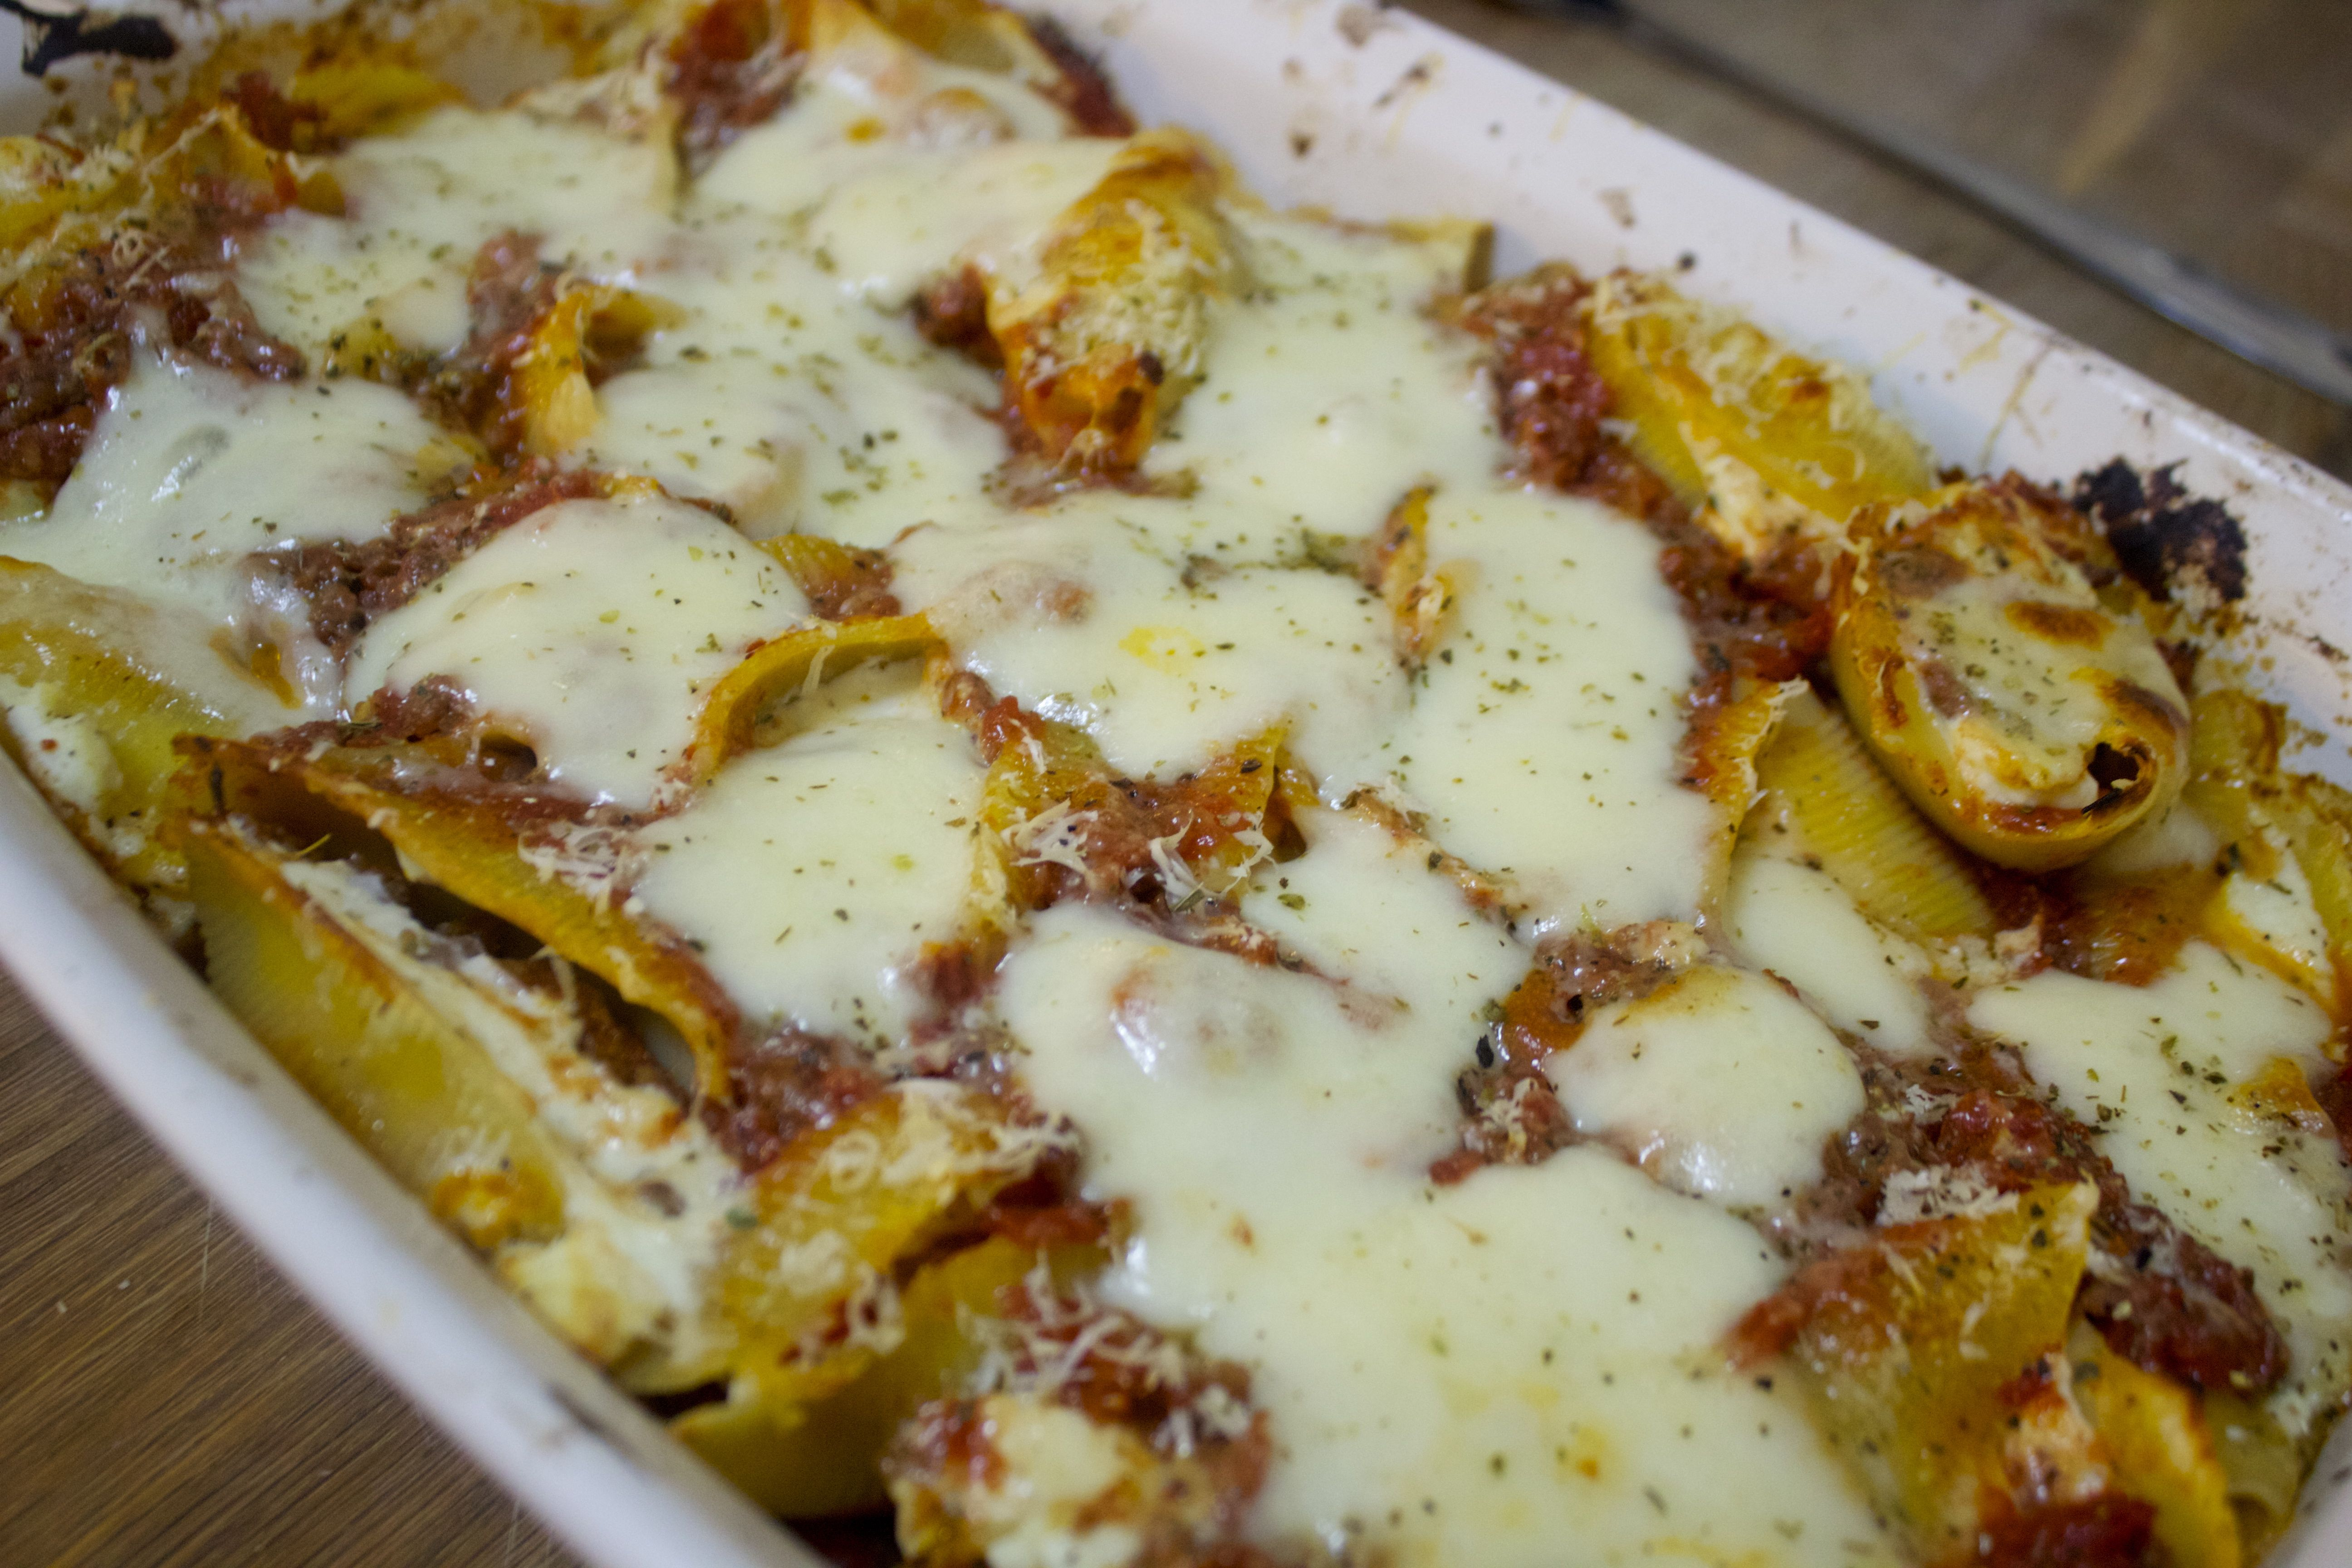 Cheesy stuffed shells with a homemade, slow cooked meat sauce